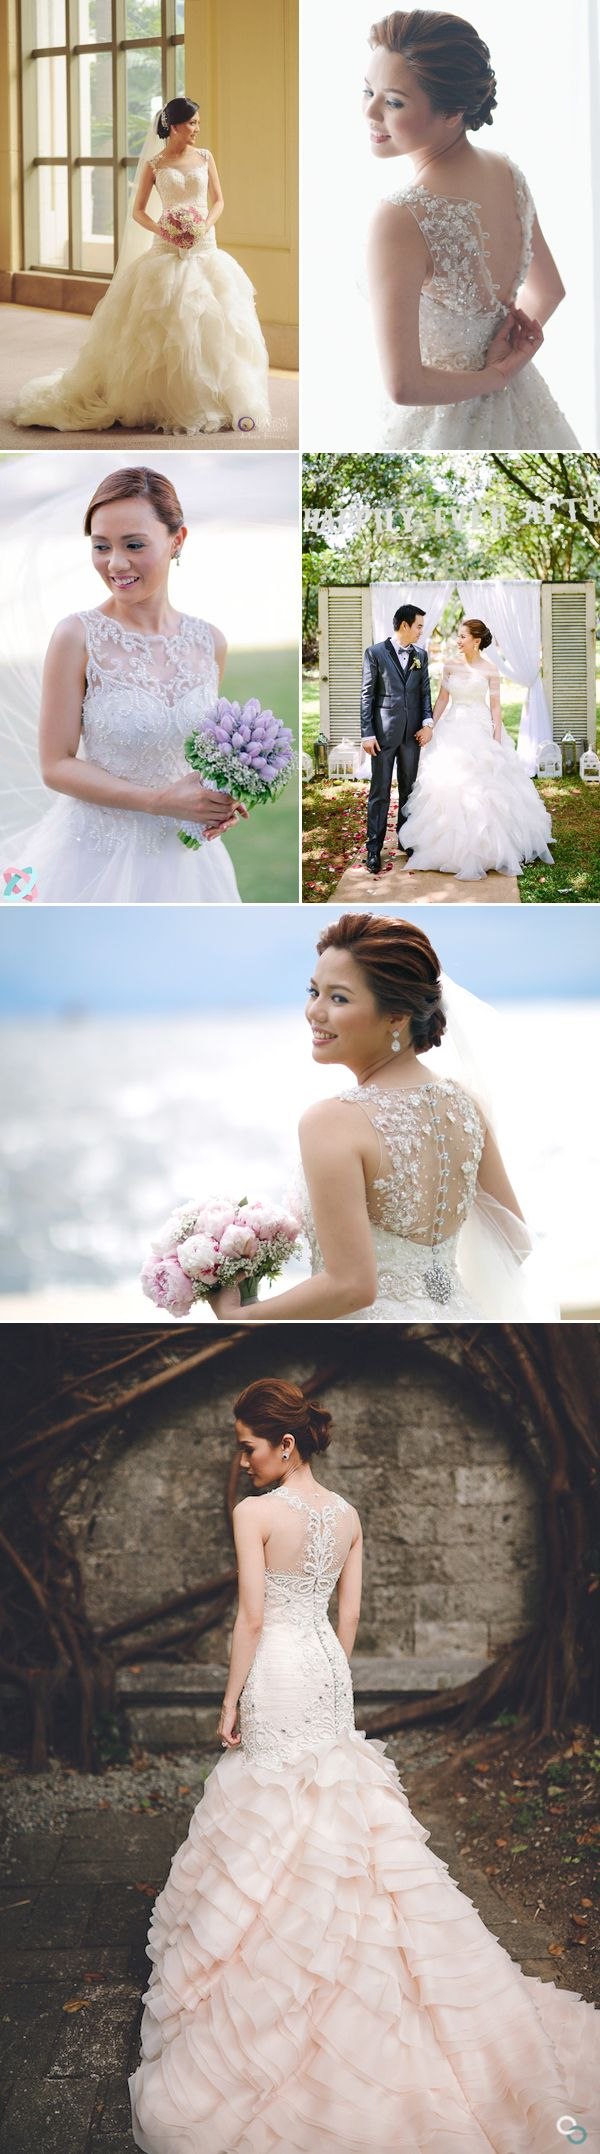 24 best Wedding gown images on Pinterest | Bridal gowns, Bride and ...